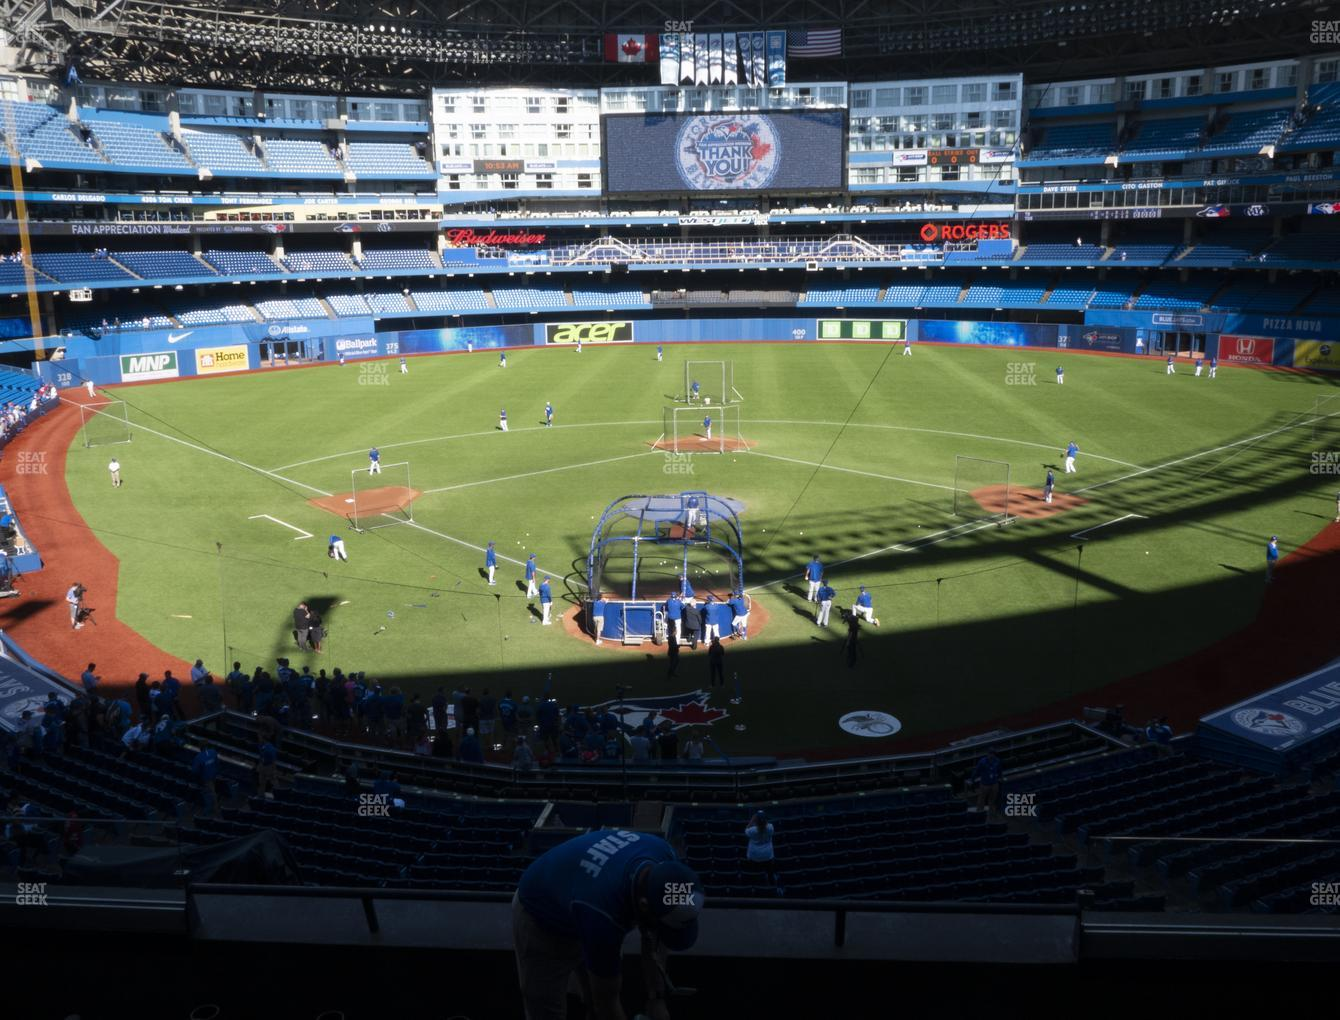 Toronto Blue Jays at Rogers Centre TD Comfort Club 224 AR View